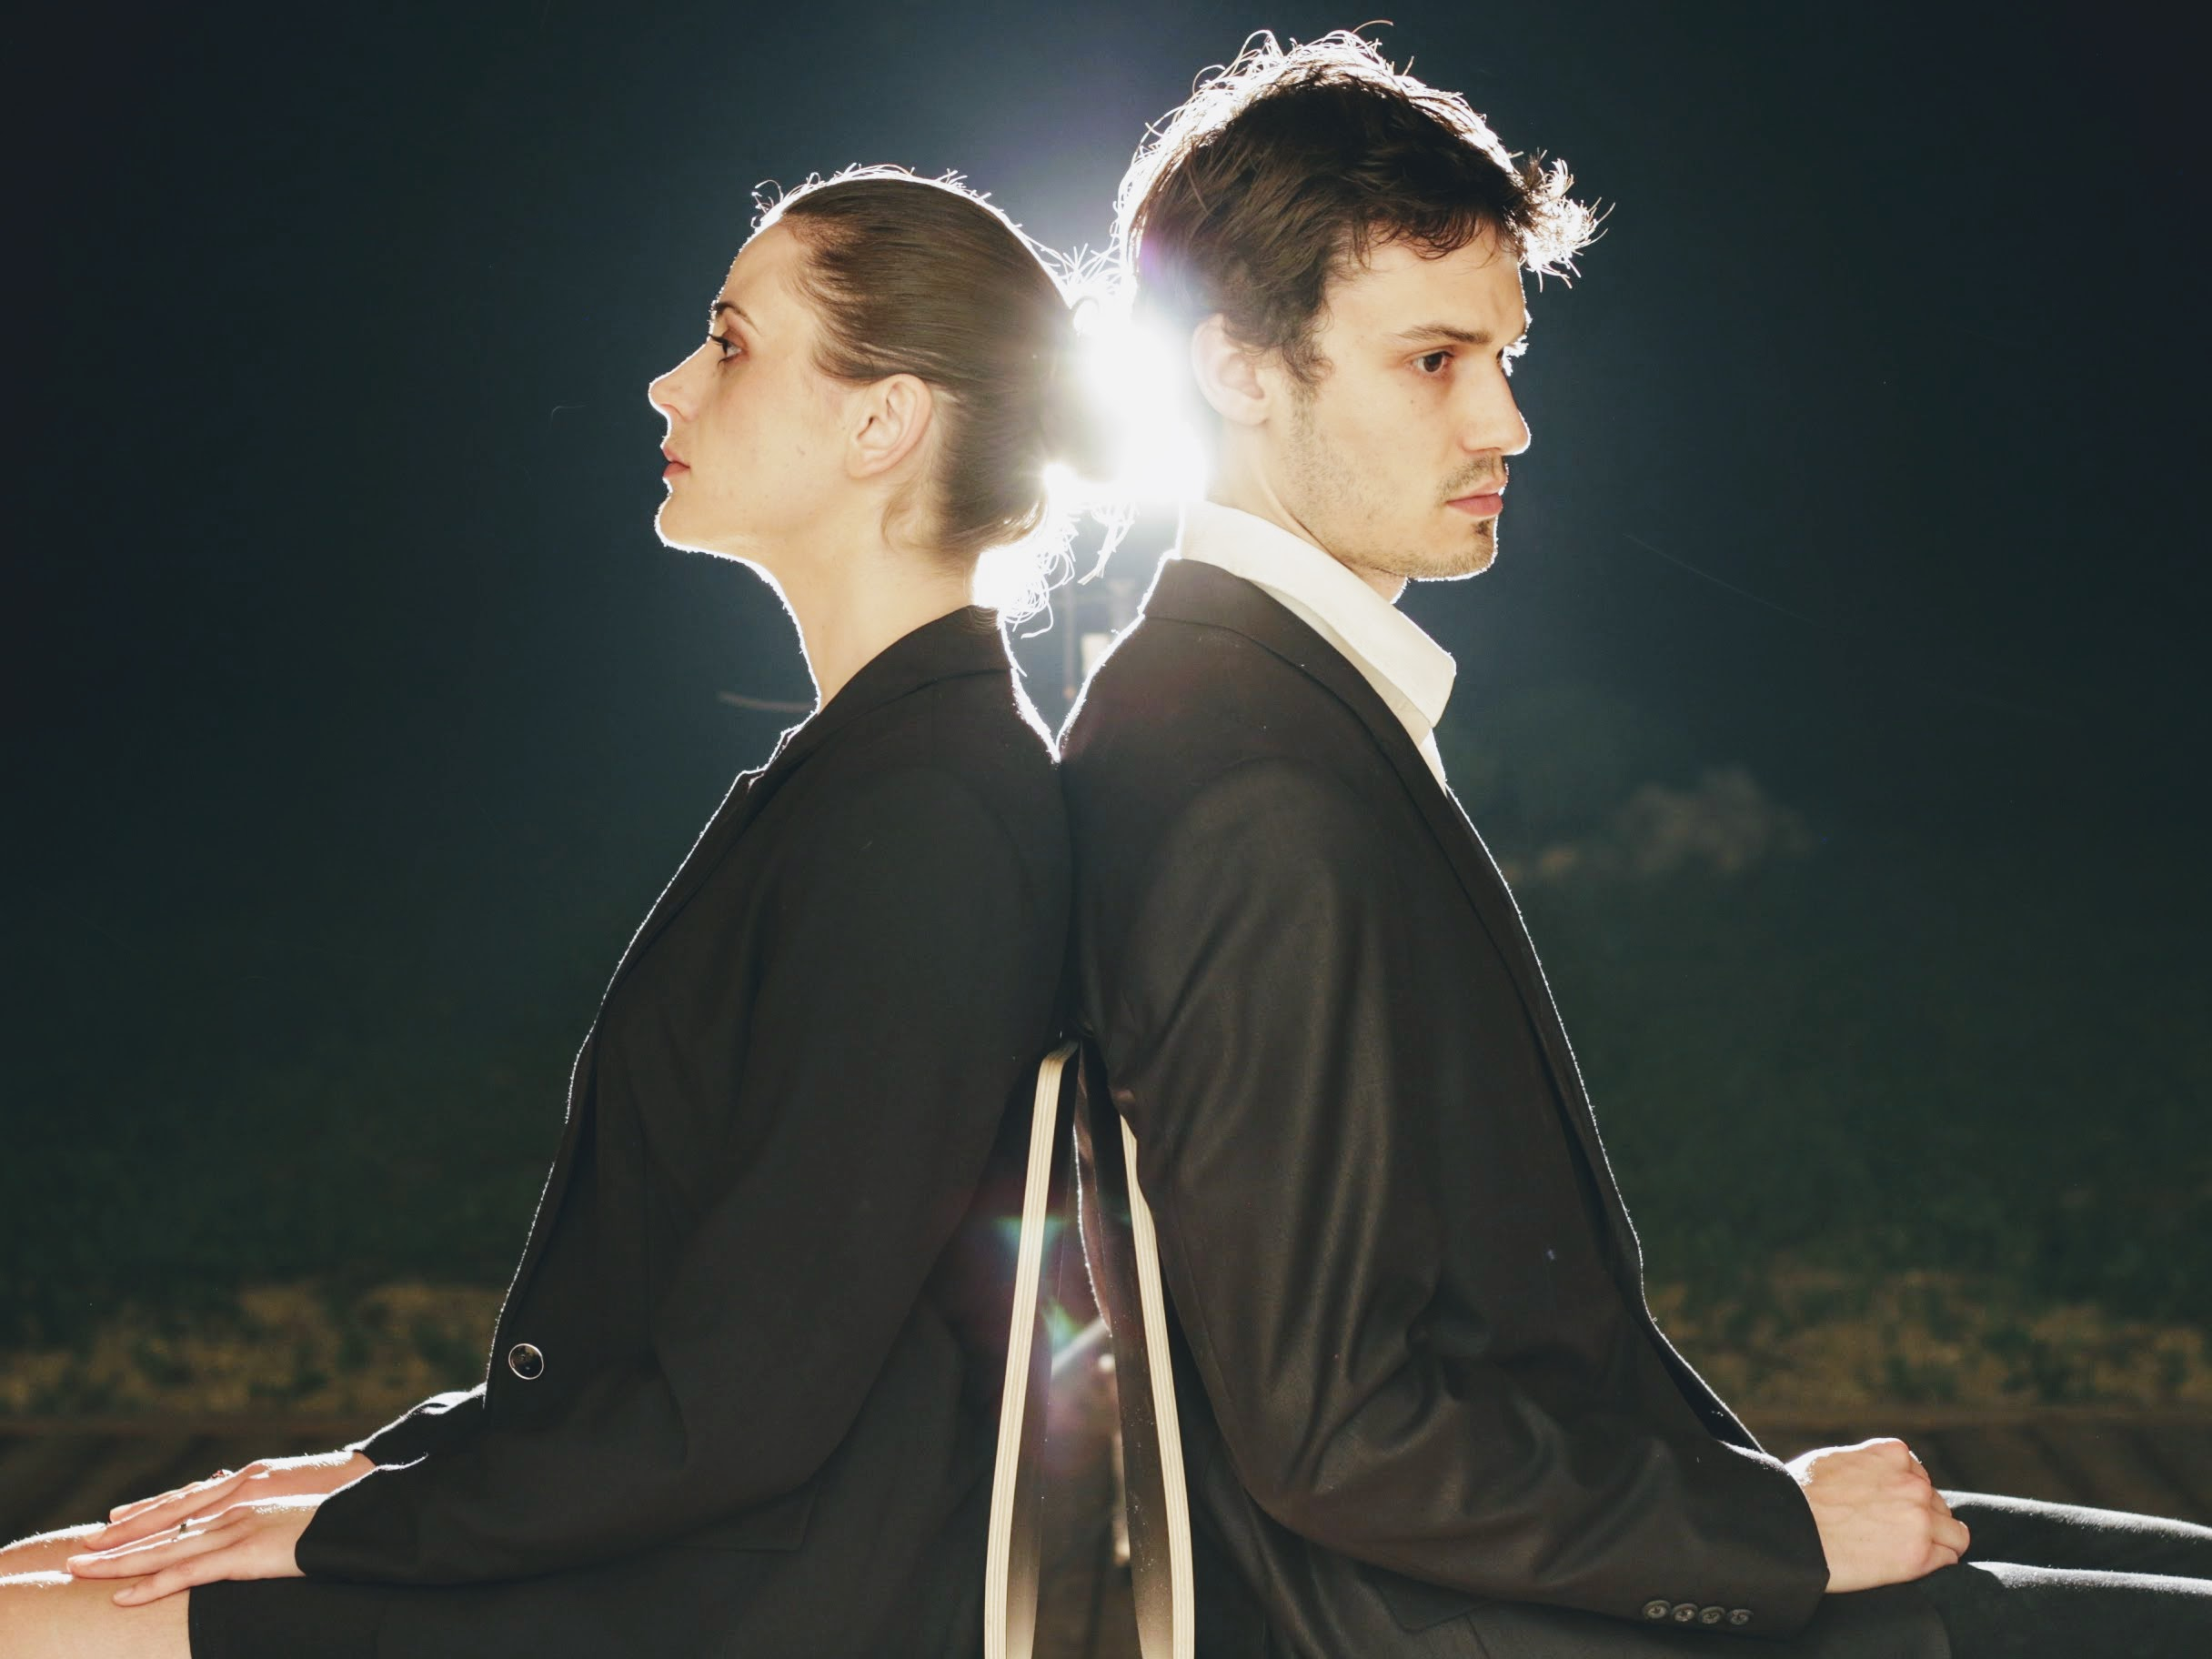 Anastasia Wells and Elliot Delage, sitting back to back with a light shining between them.